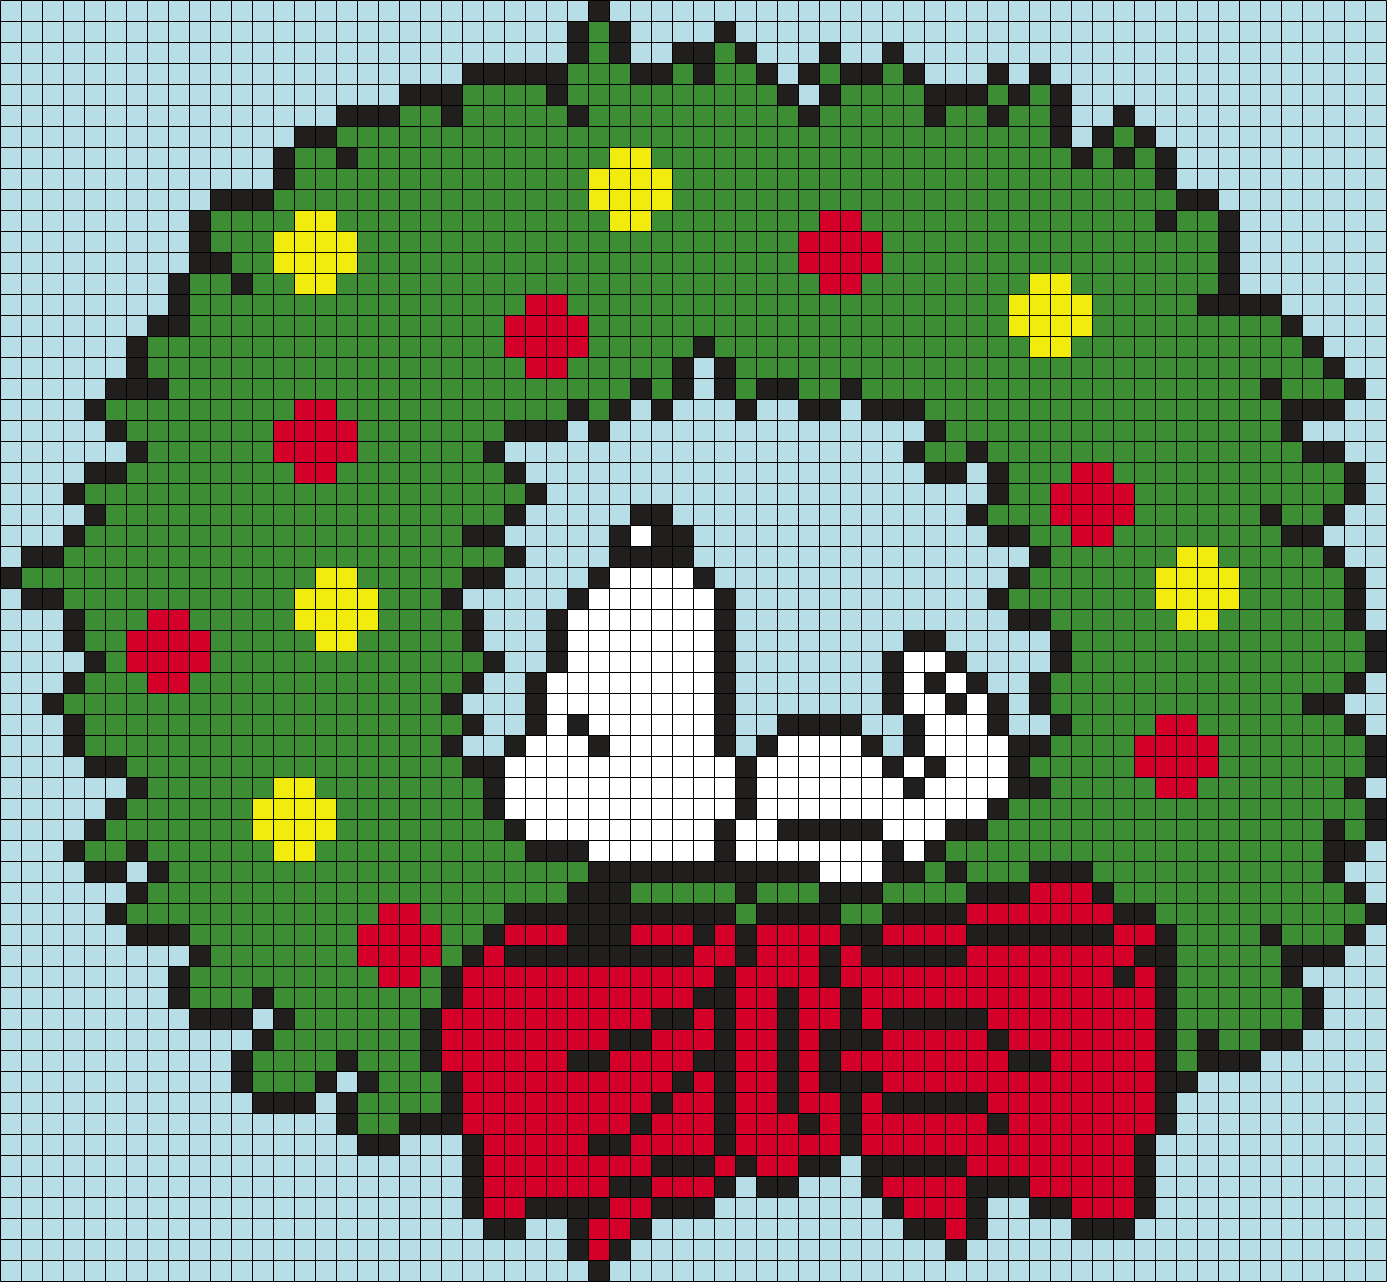 Snoopy Wreath (from Peanuts) Square Grid